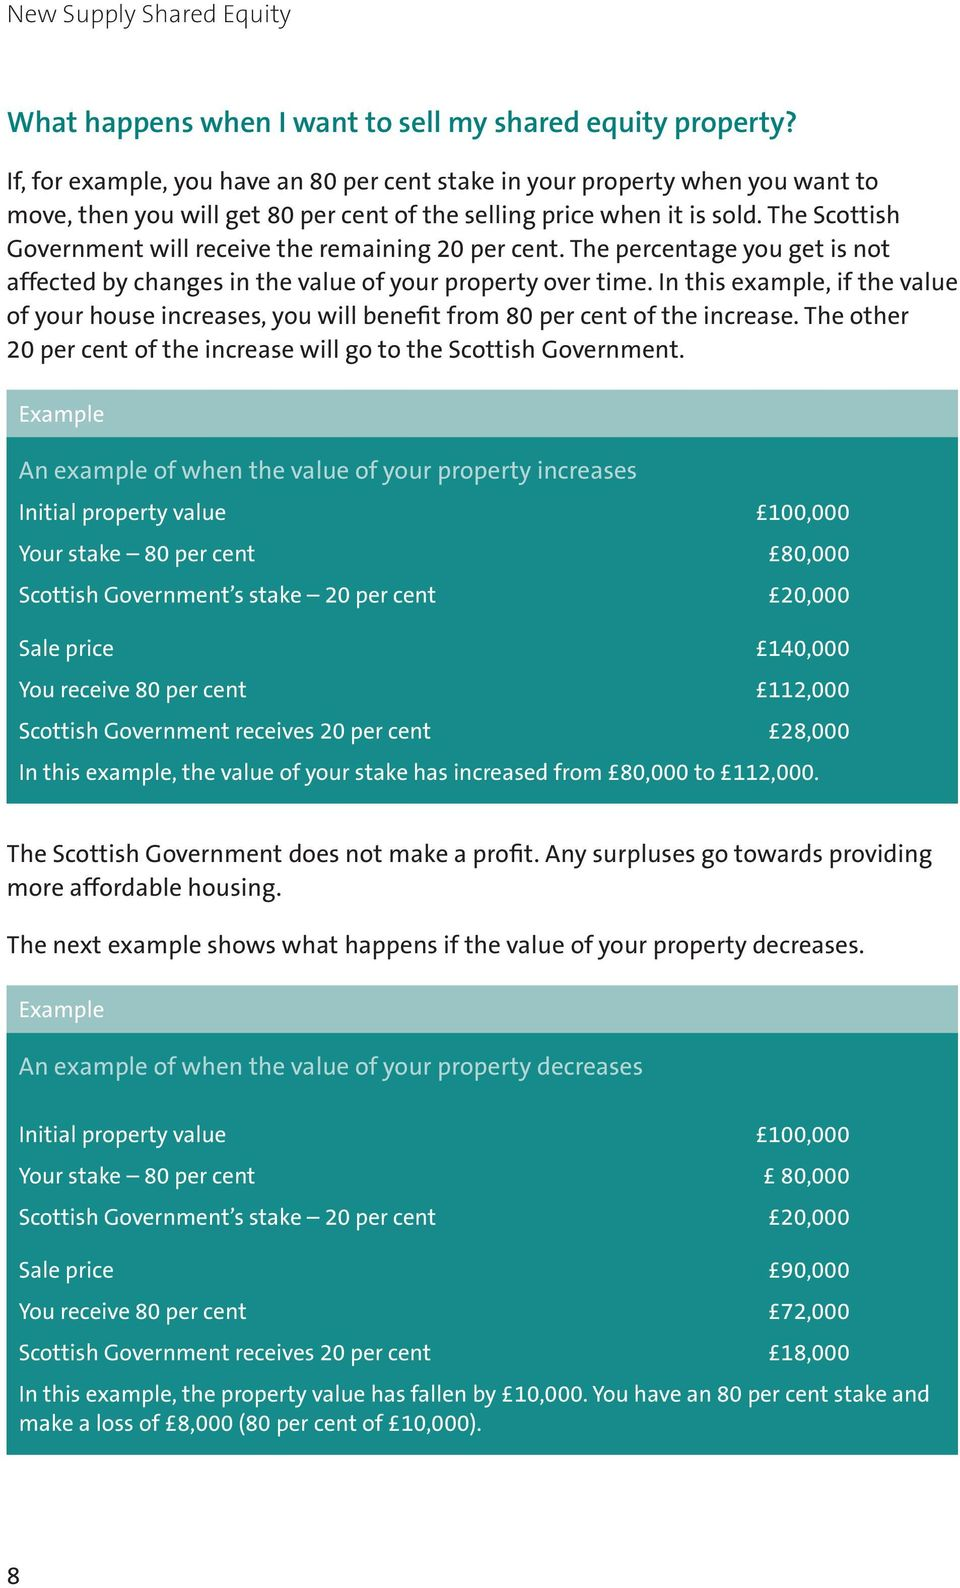 The Scottish Government will receive the remaining 20 per cent. The percentage you get is not affected by changes in the value of your property over time.